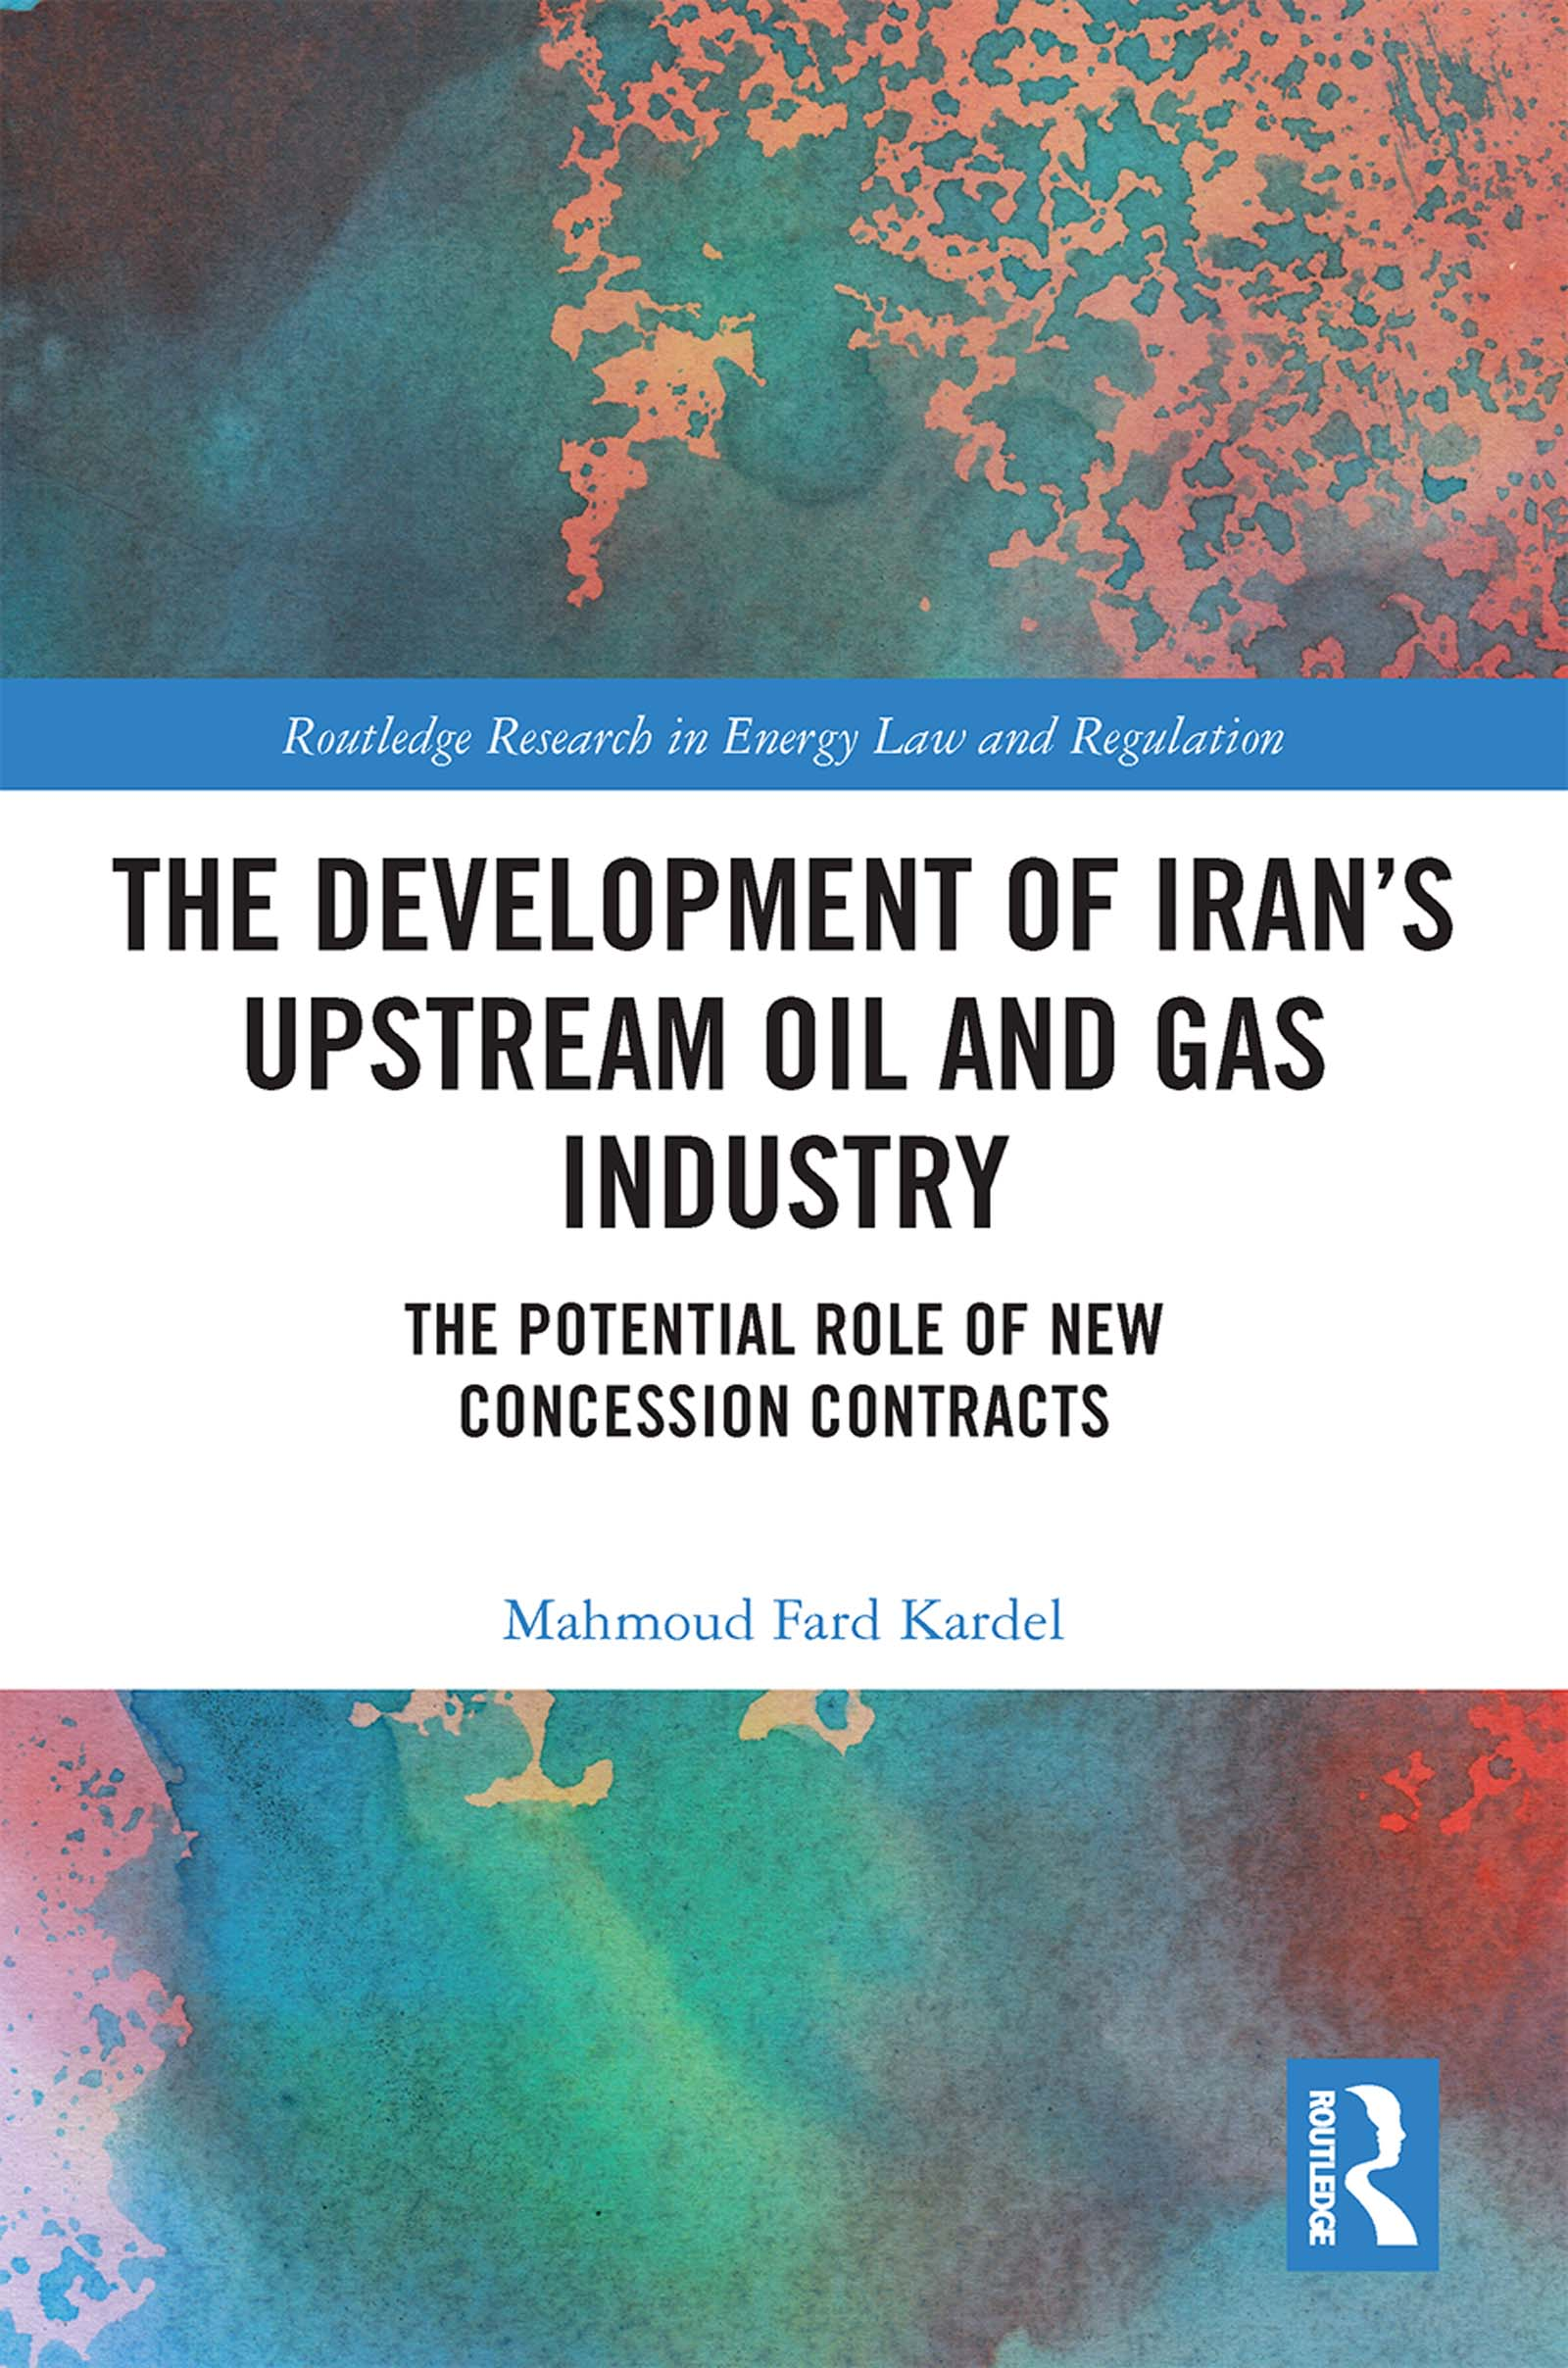 The Development of Iran's Upstream Oil and Gas Industry: The Potential Role of New Concession Contracts book cover